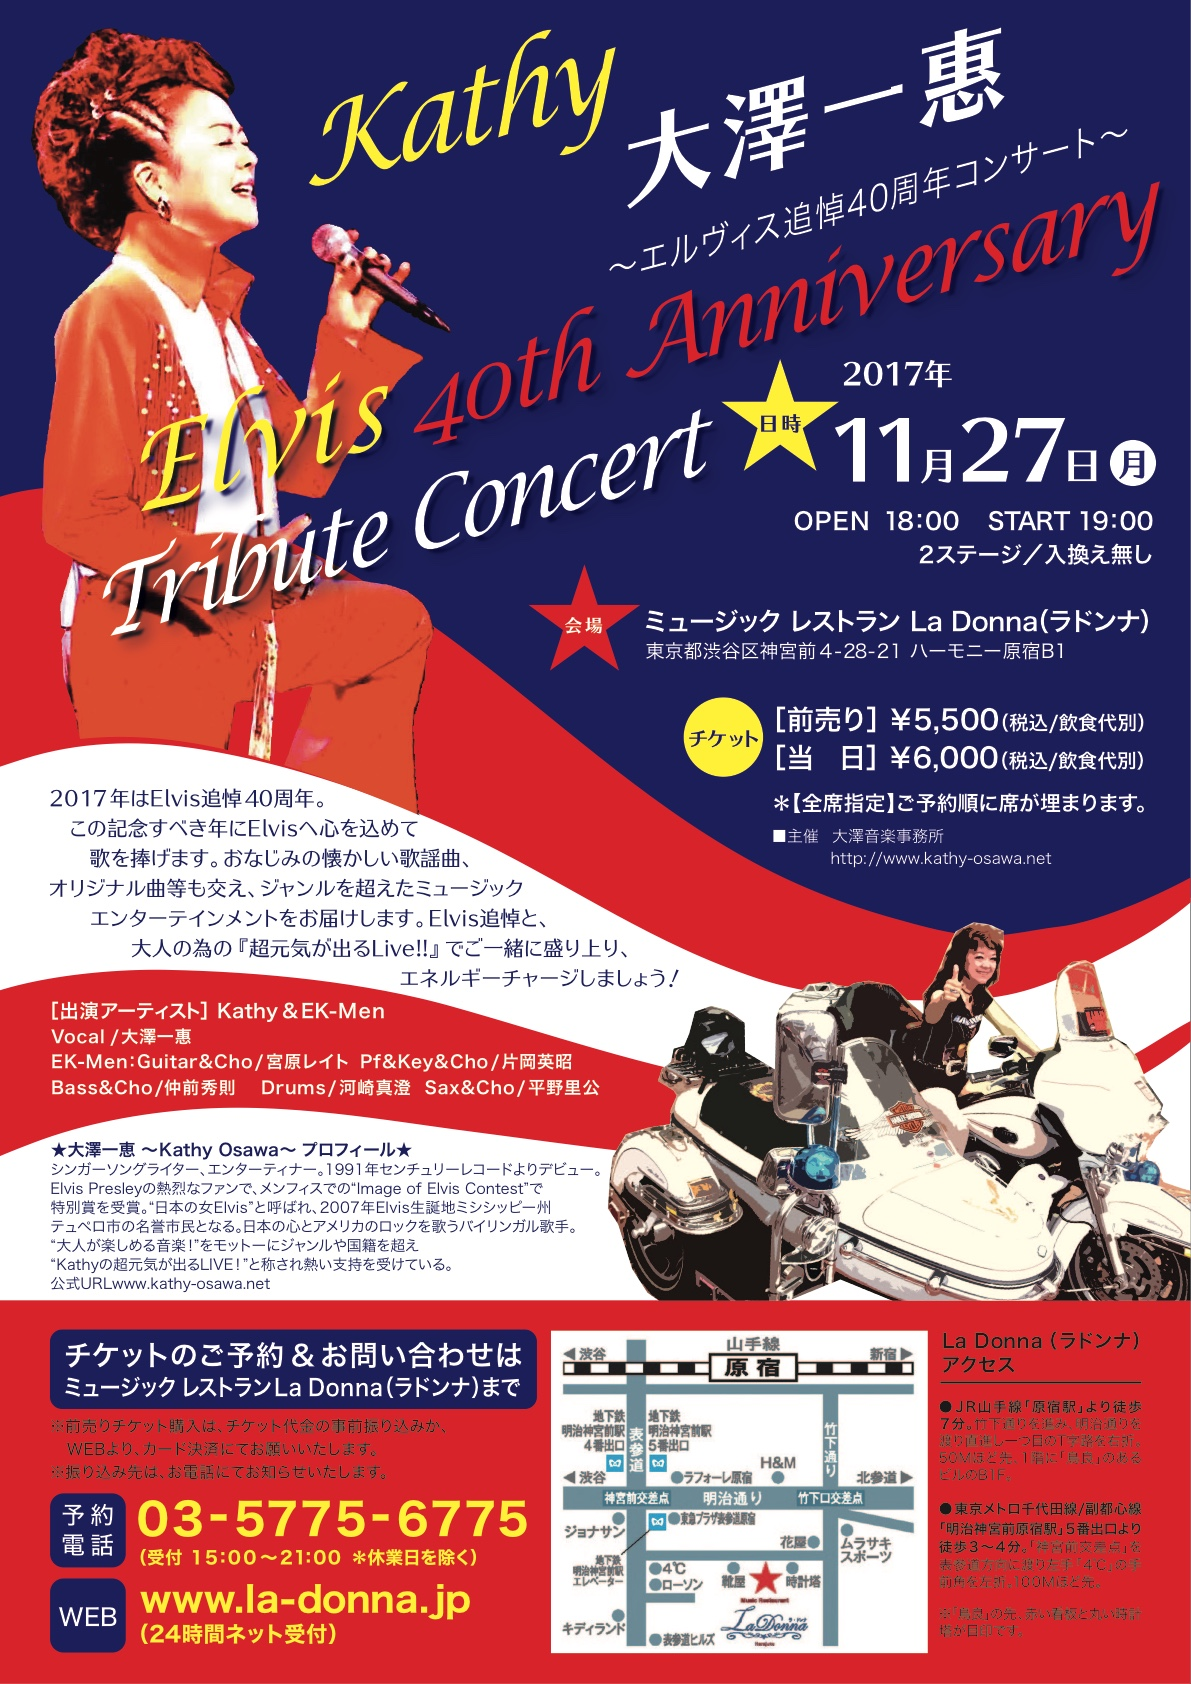 大澤一惠(kathy)  Elvis 40th Anniversary Tribute Concert ~エルヴィス追悼40周年コンサート~